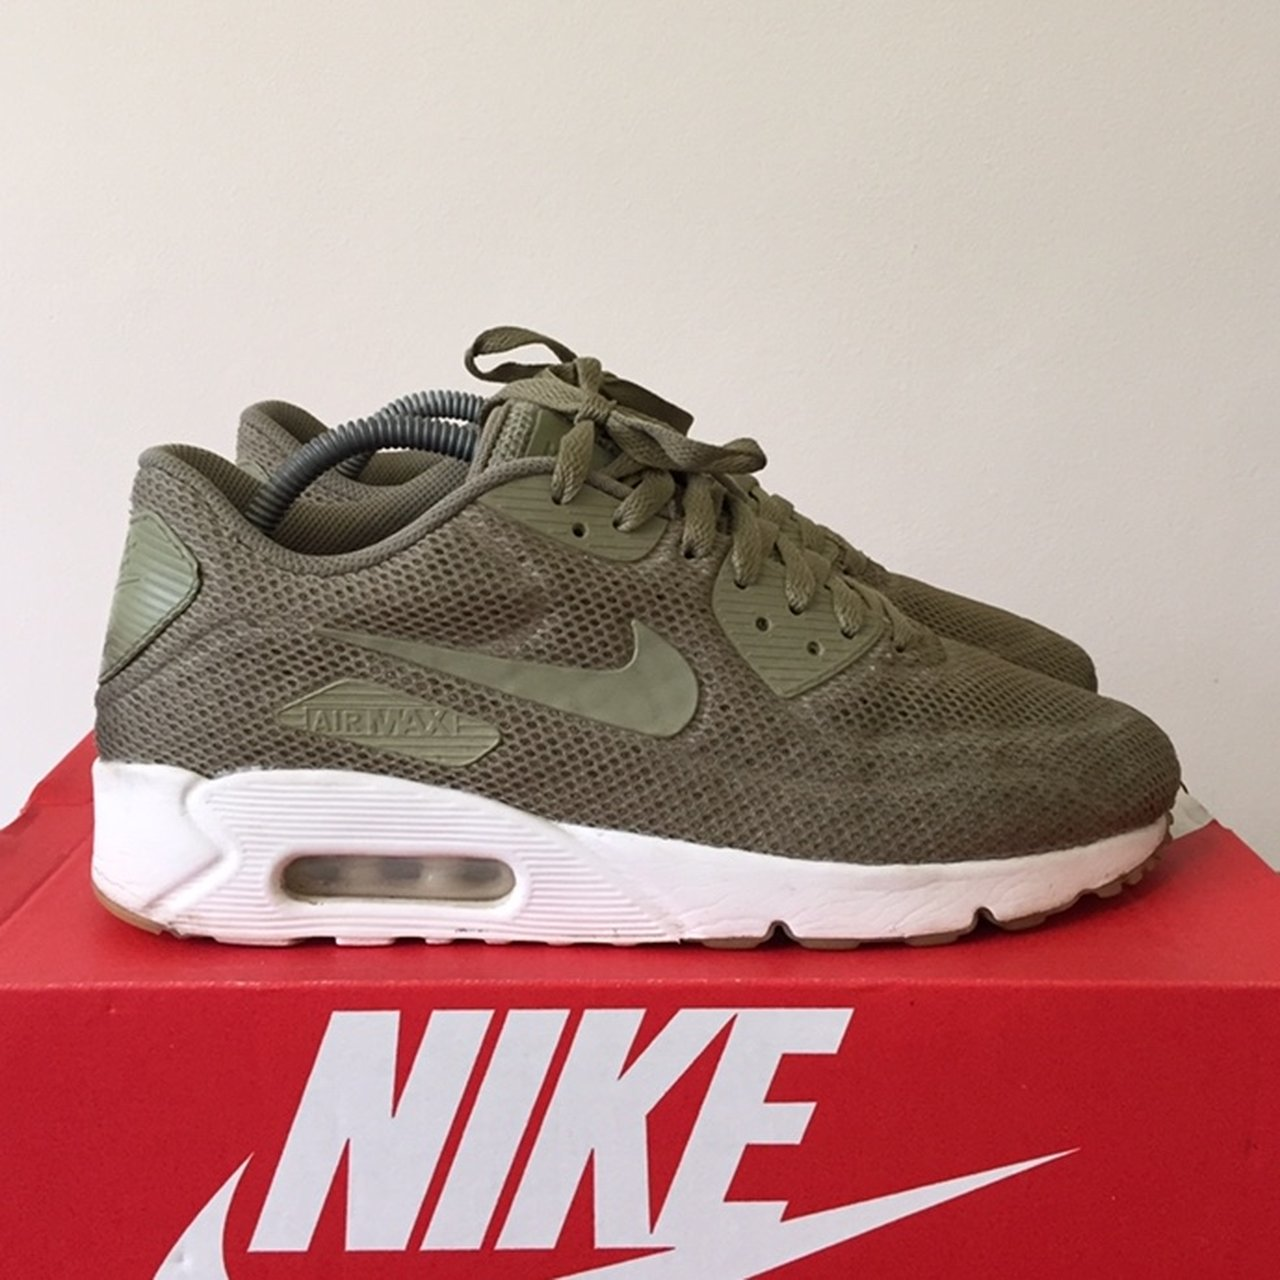 uk availability a75ce db494 marcustye77. in 40 minutes. Wolverhampton, United Kingdom. Mens Nike Air  Max 90 Ultra khaki trainers ...